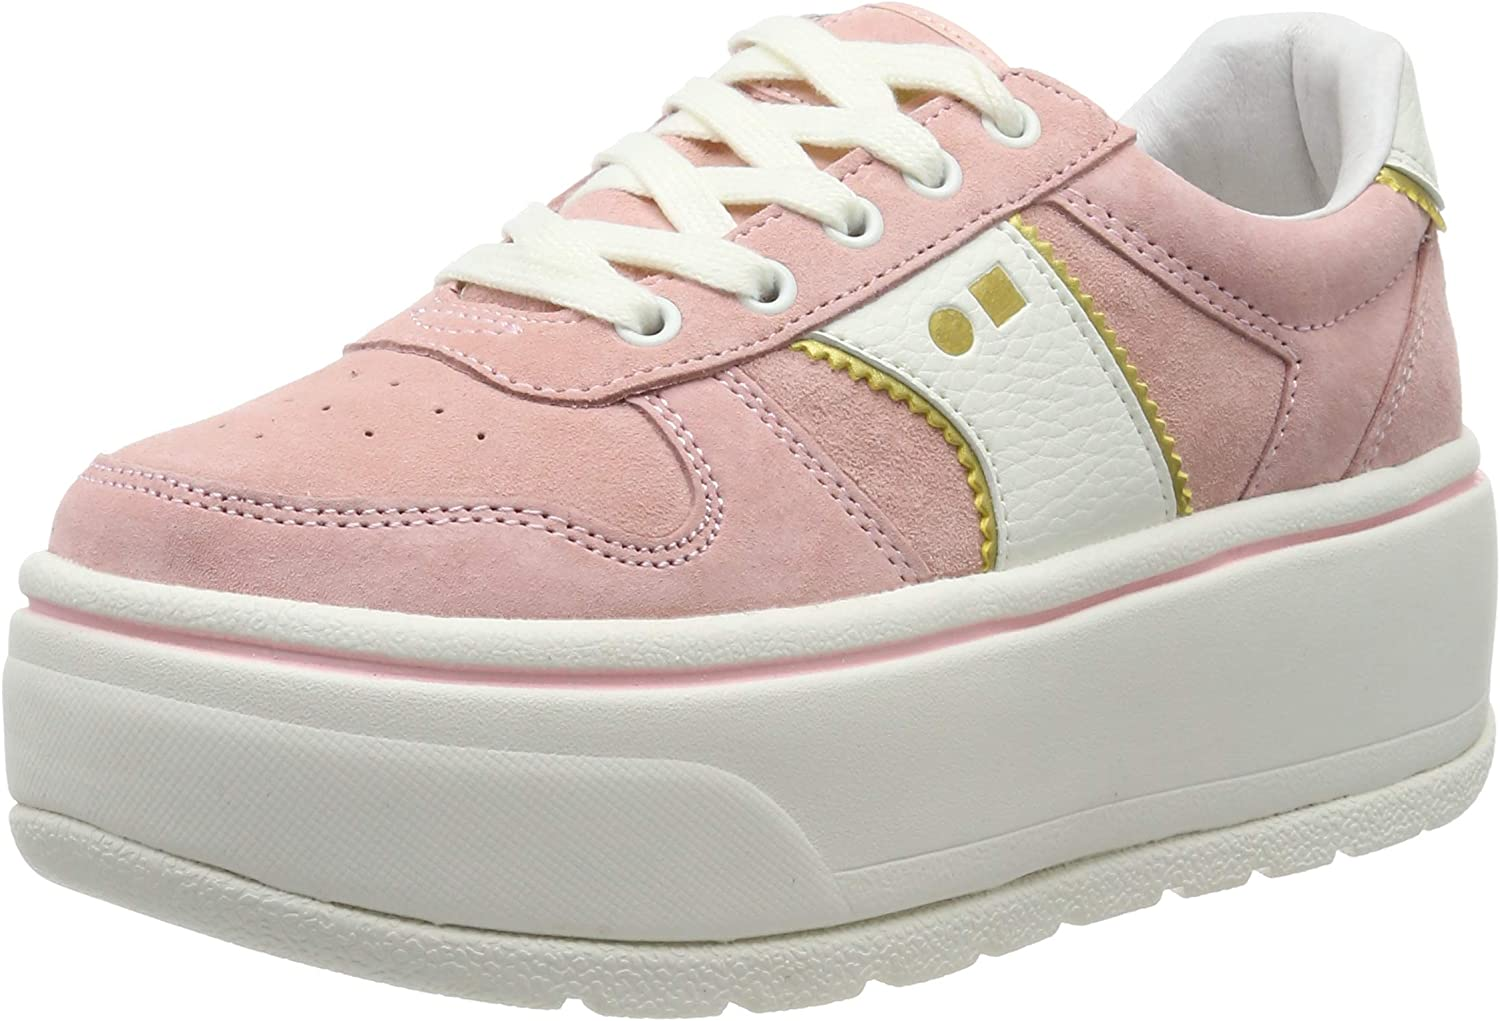 Coolway Women's Tulsa Mall Sneakers Be super welcome Low-Top